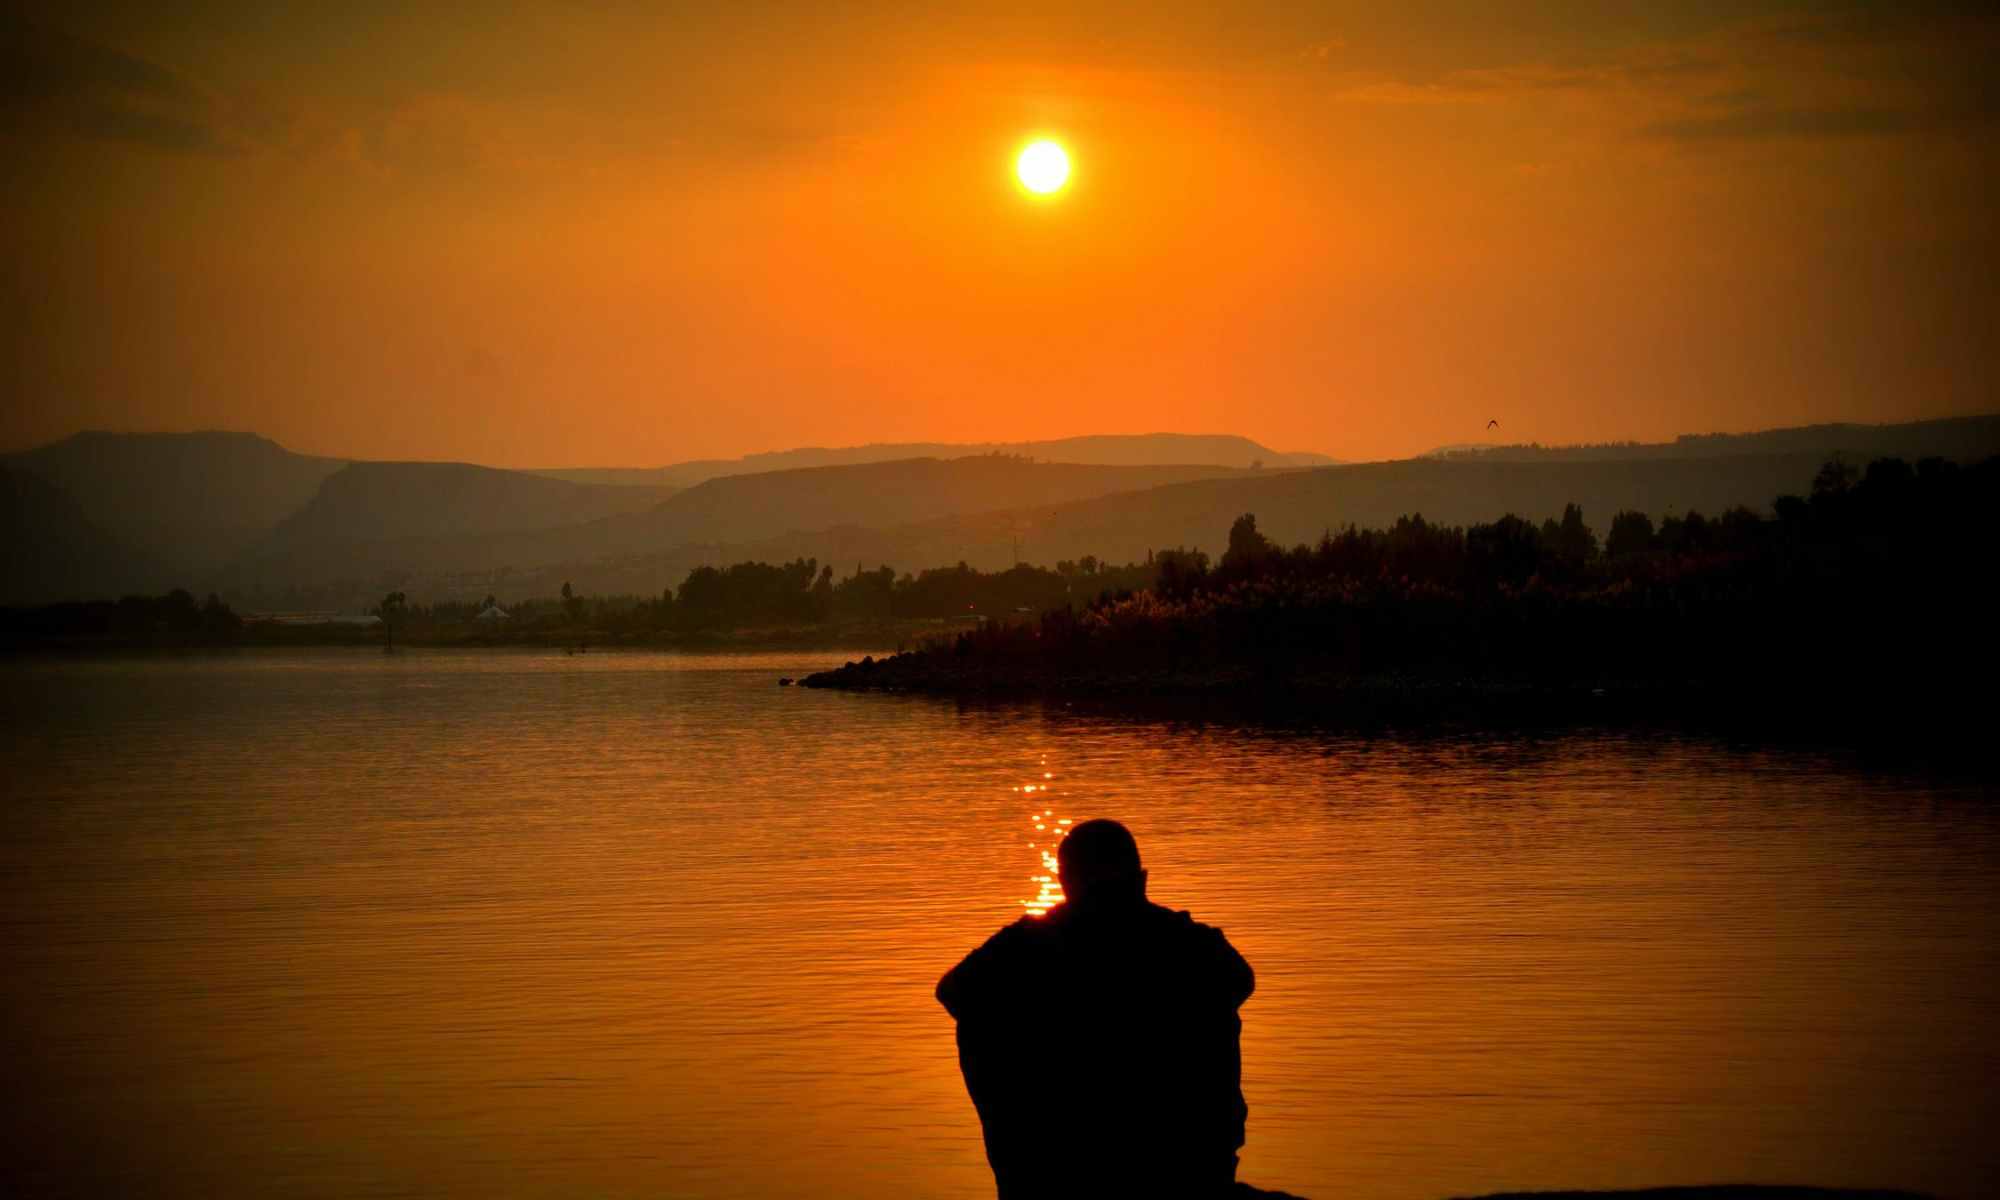 Man sitting by lake during sunset